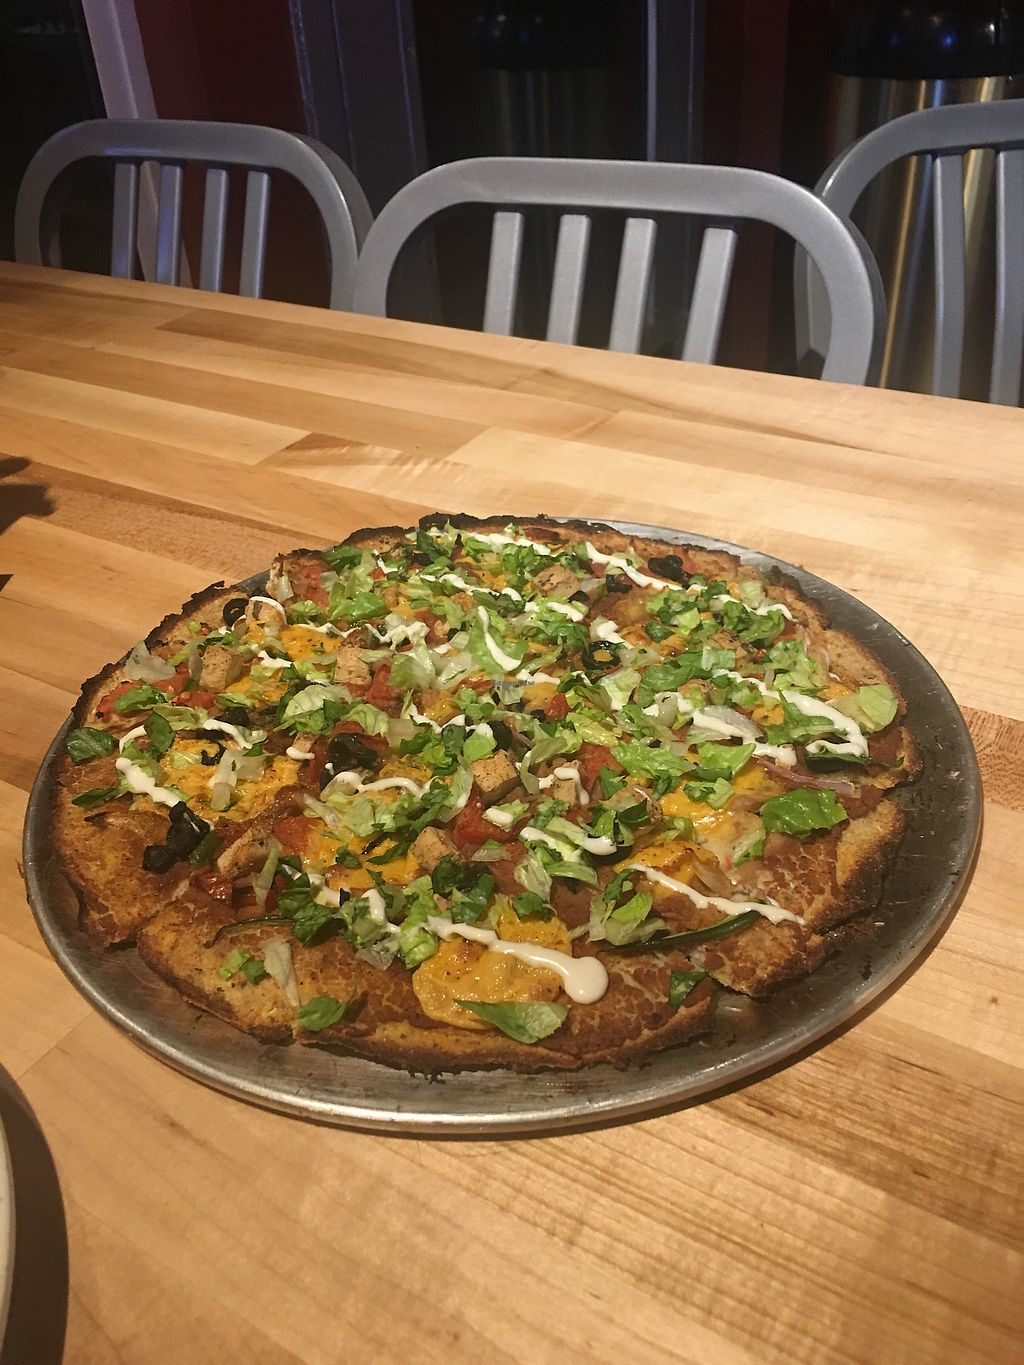 """Photo of The Pizza Patio  by <a href=""""/members/profile/billierod"""">billierod</a> <br/>Vegan Taco Loco Cauliflower Crust  <br/> December 8, 2017  - <a href='/contact/abuse/image/103761/333305'>Report</a>"""